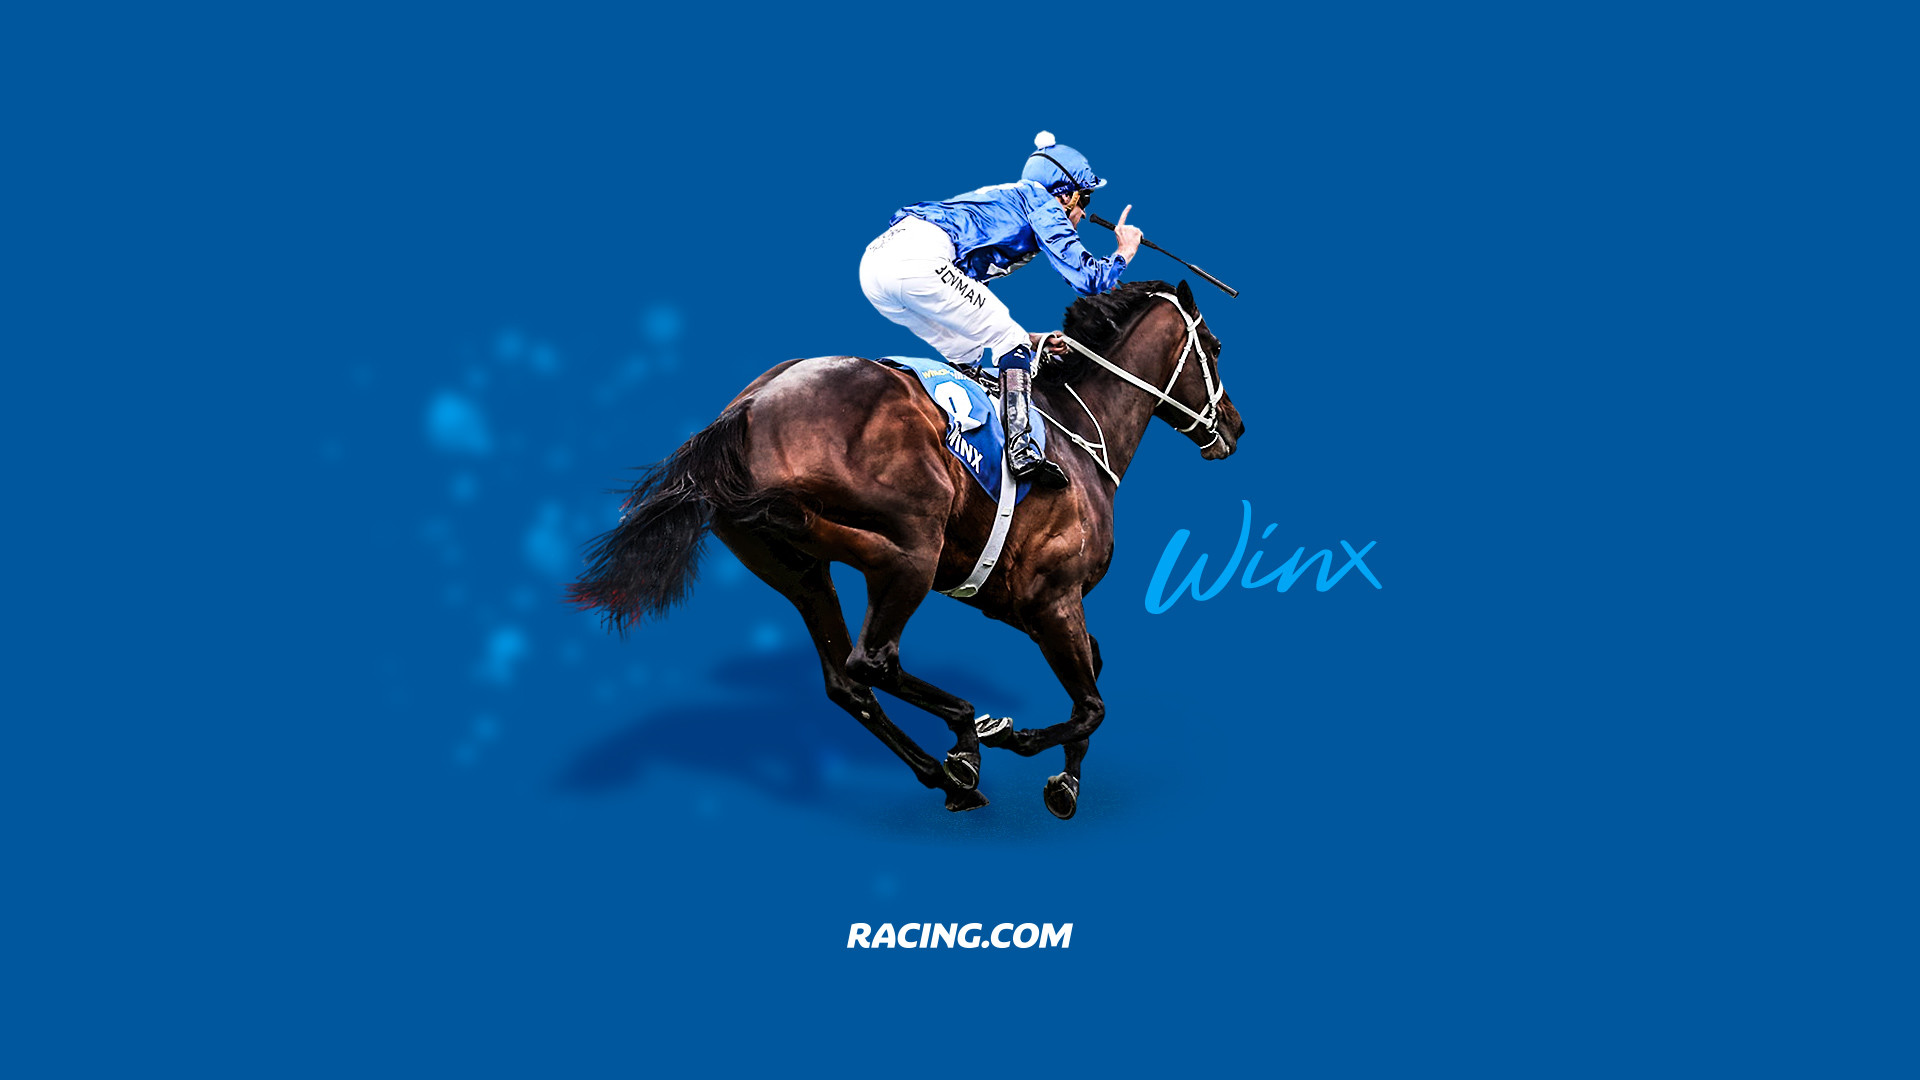 Horse Racing Wallpapers Hd Wallpaper Collections 4kwallpaper Wiki